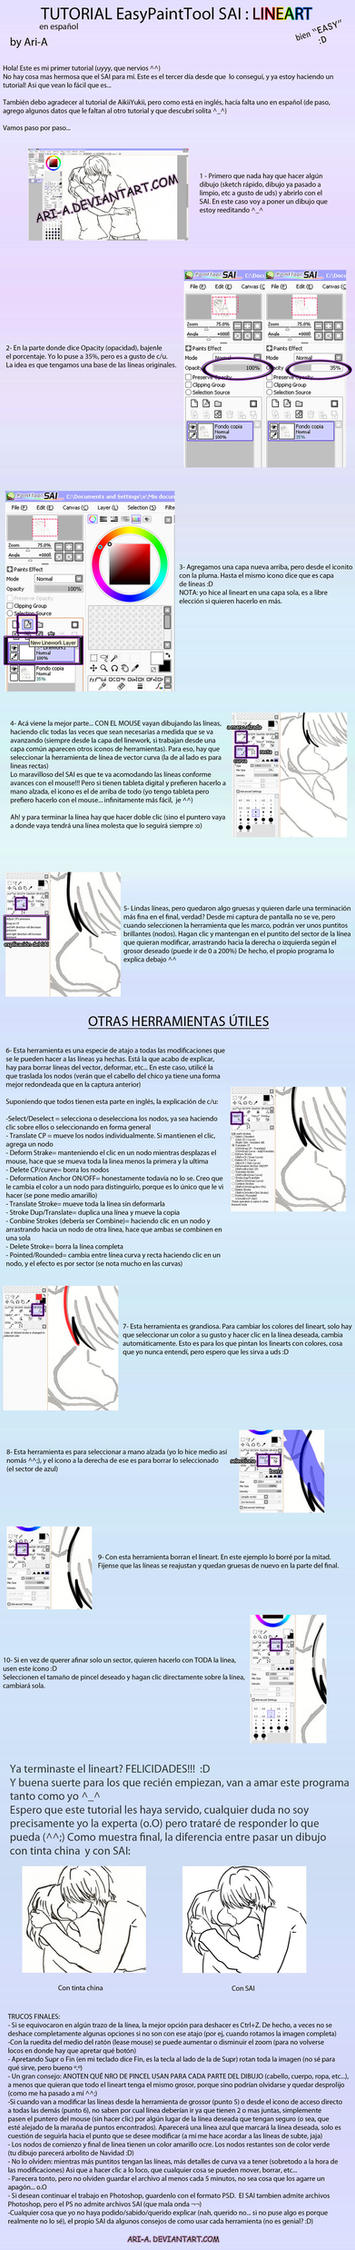 TUTORIAL LINEART SAI - spanish by Ari-A